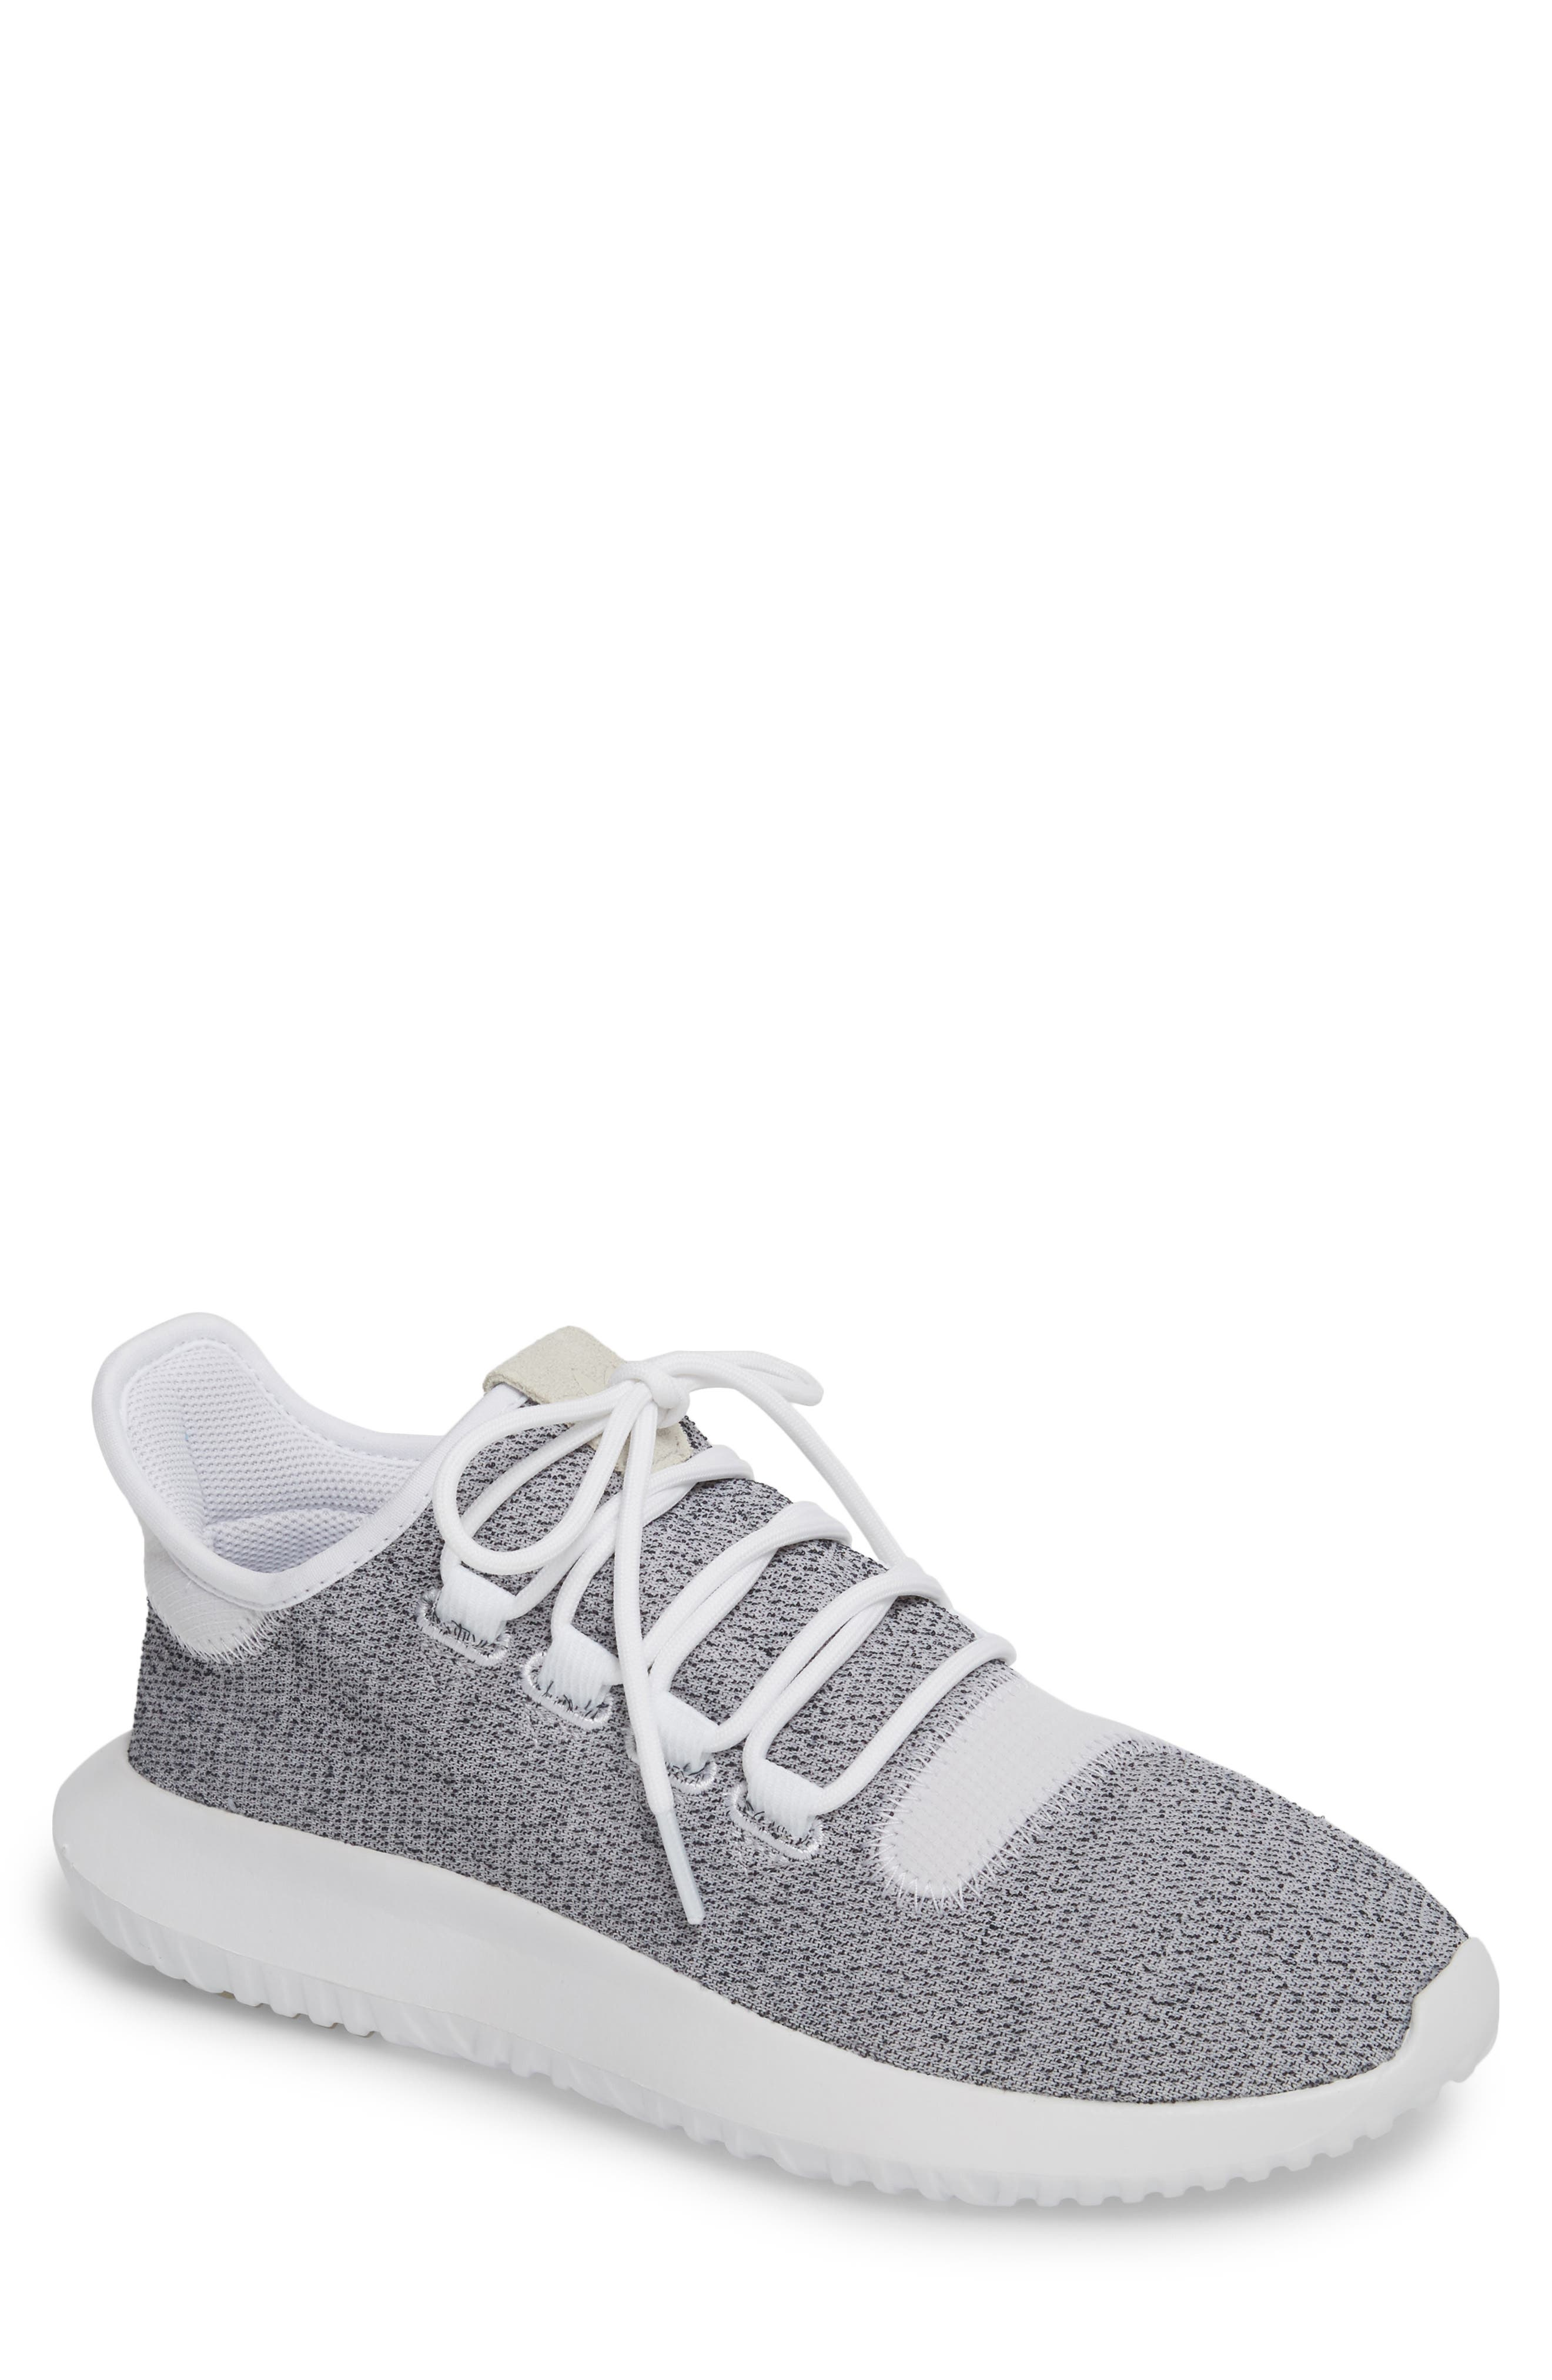 adidas Tubular Shadow Sneaker (Men)